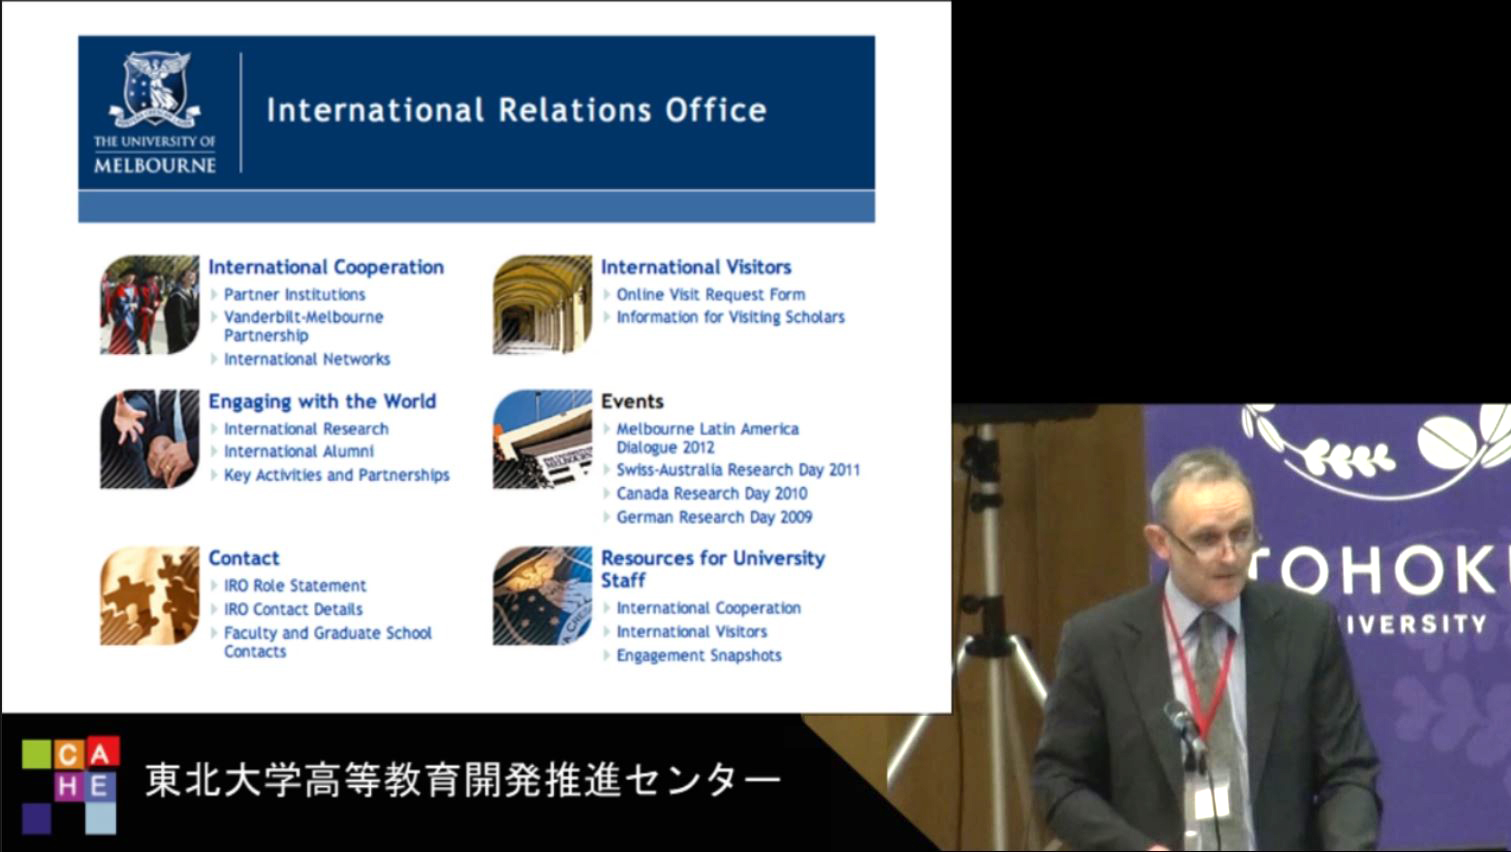 Managing internationalisation: The priorities of the University of Melbourne